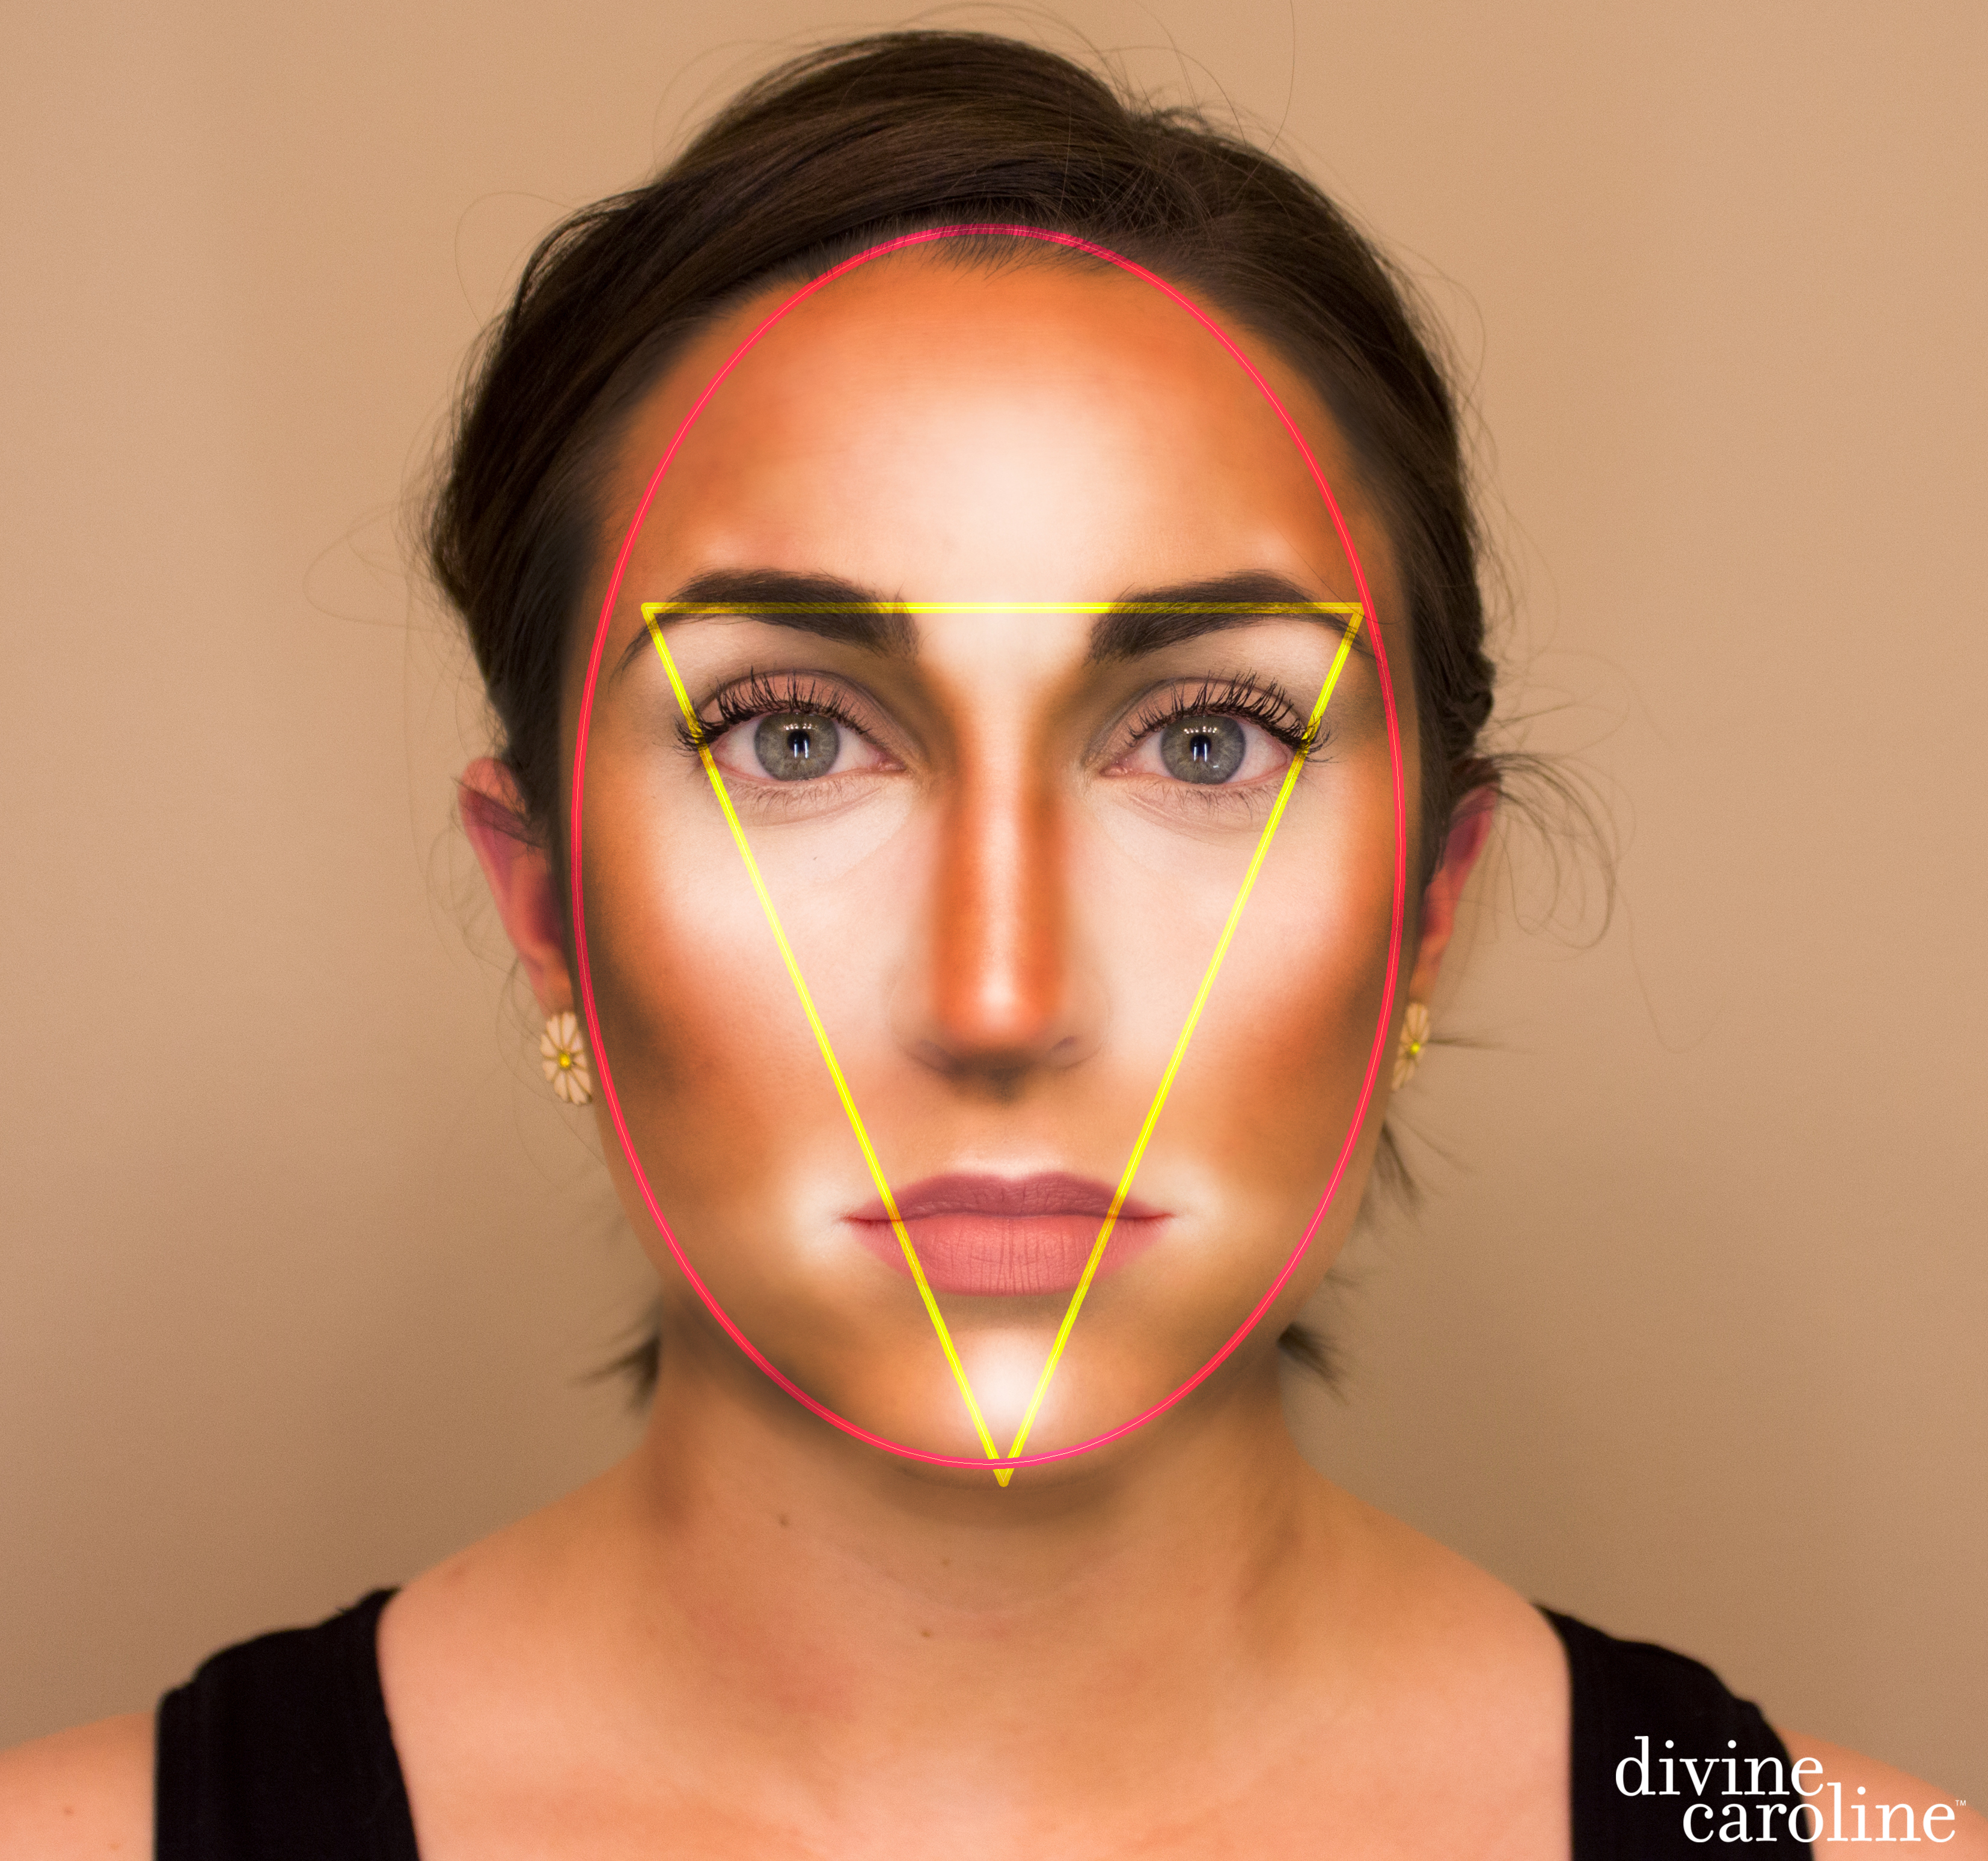 Makeup Magic Lose Pounds In Minutes With Highlighting And